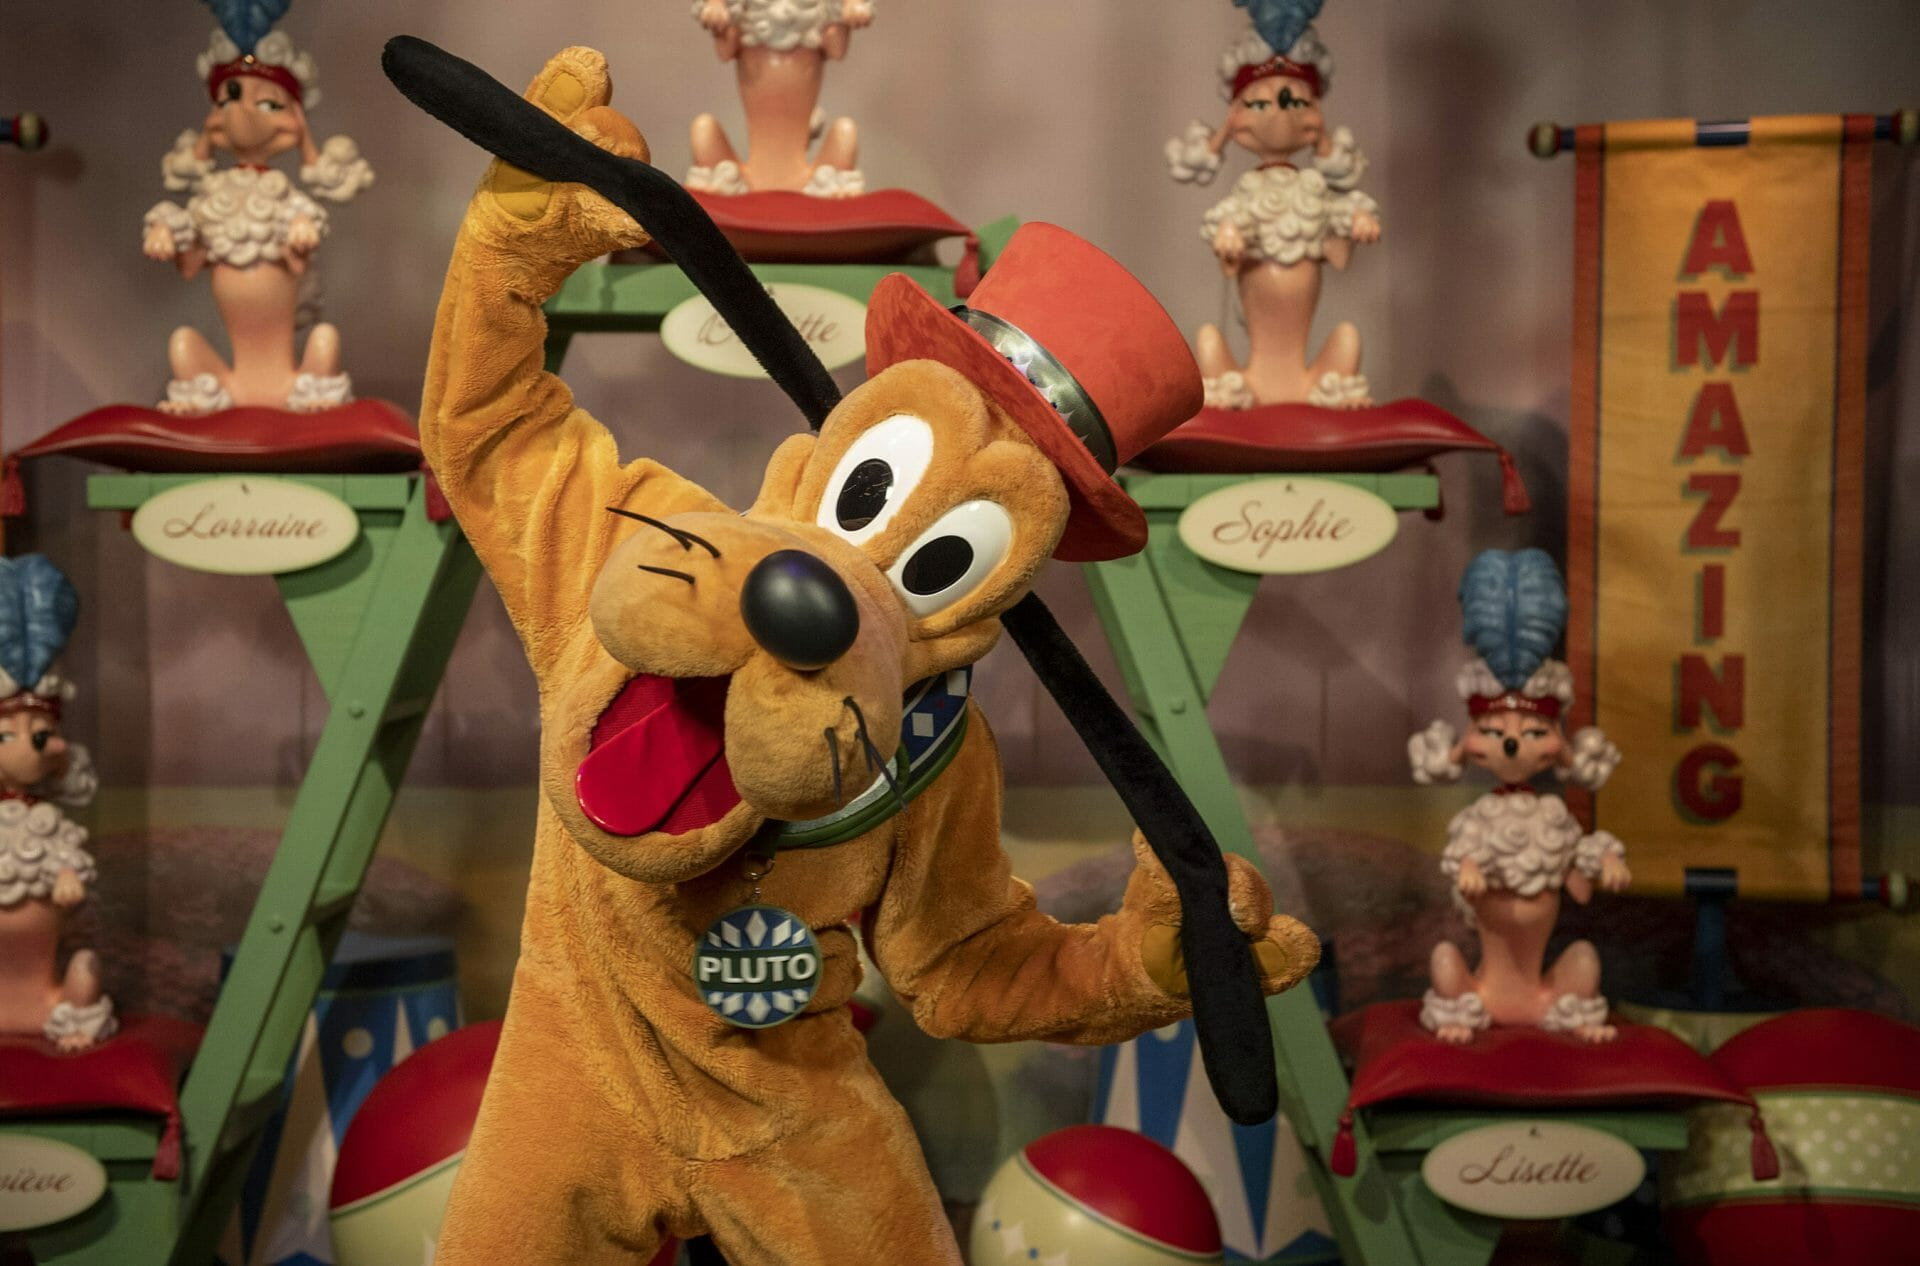 Pluto in Pete's Silly Sideshow